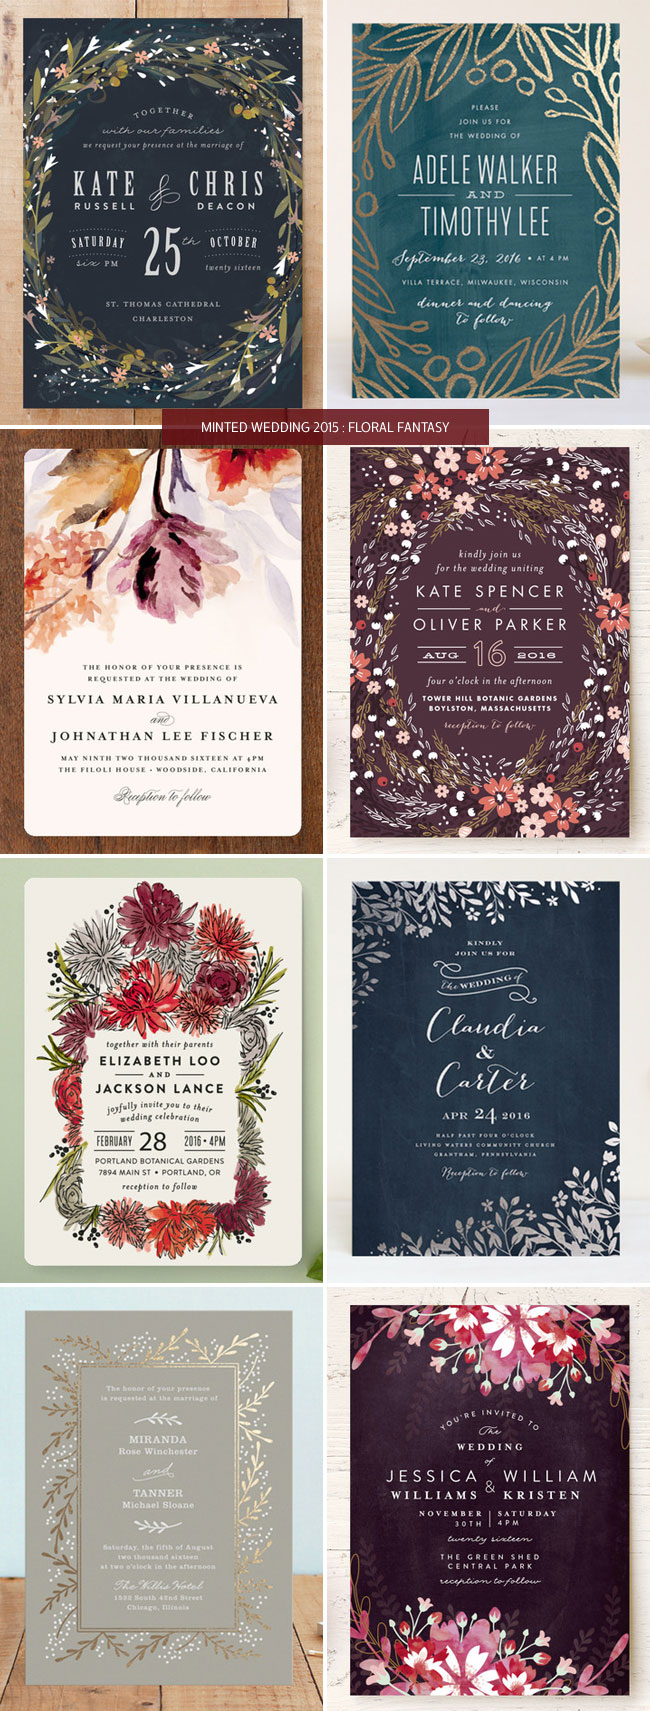 minted wedding invitations floral fantasy minted wedding invitations Floral Wedding Invitations from Minted